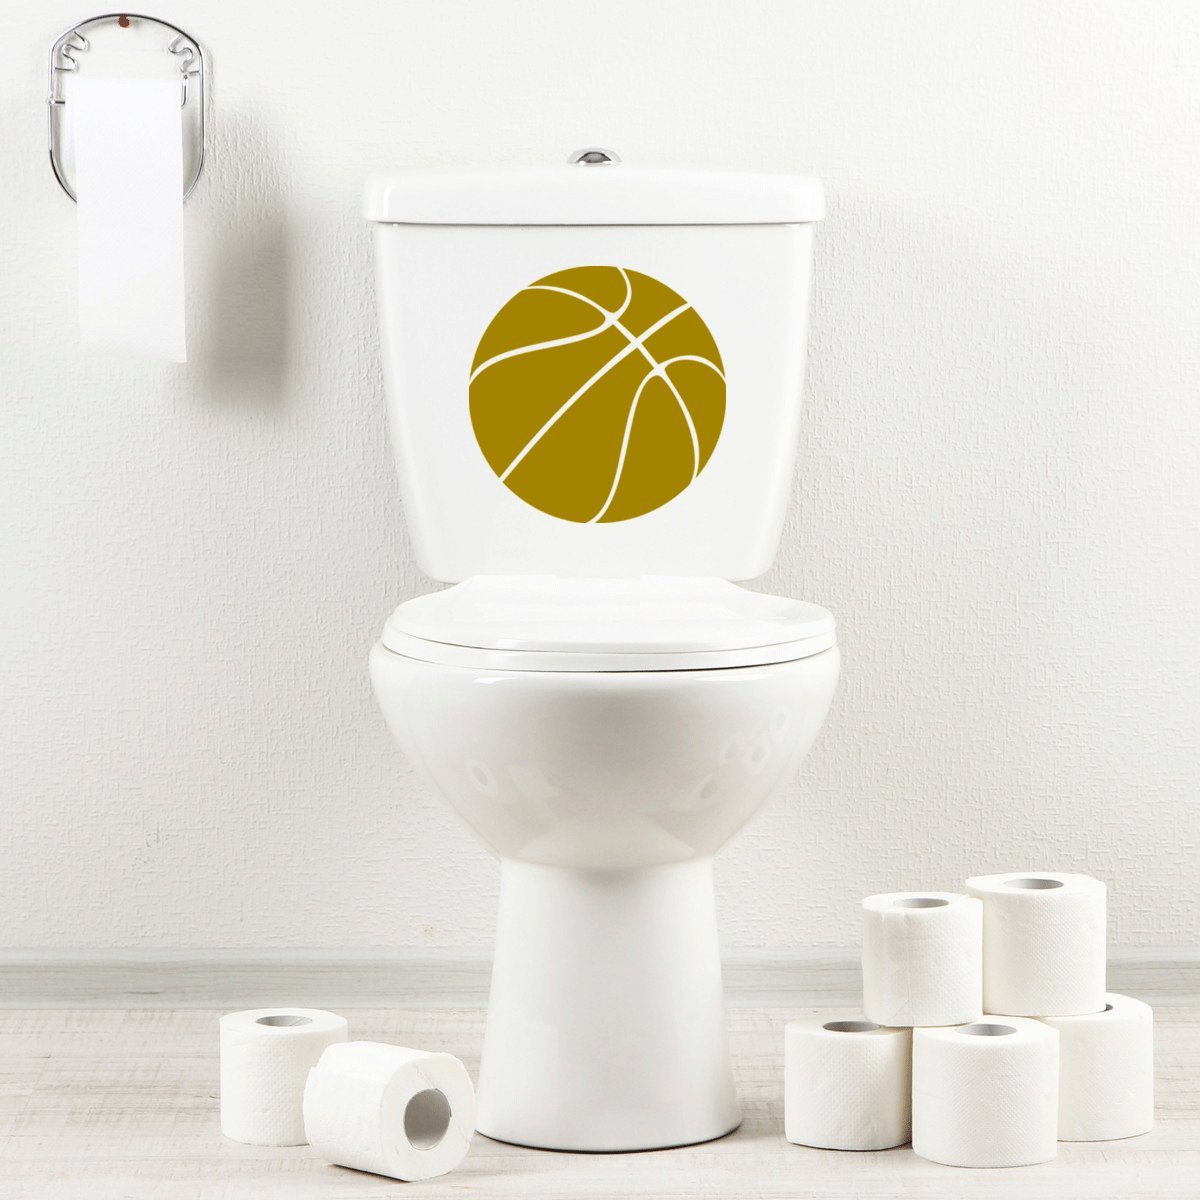 StickAny Bathroom Decal Series Basketball Simple Sticker for Toilet Bowl, Bath, Seat (Black)